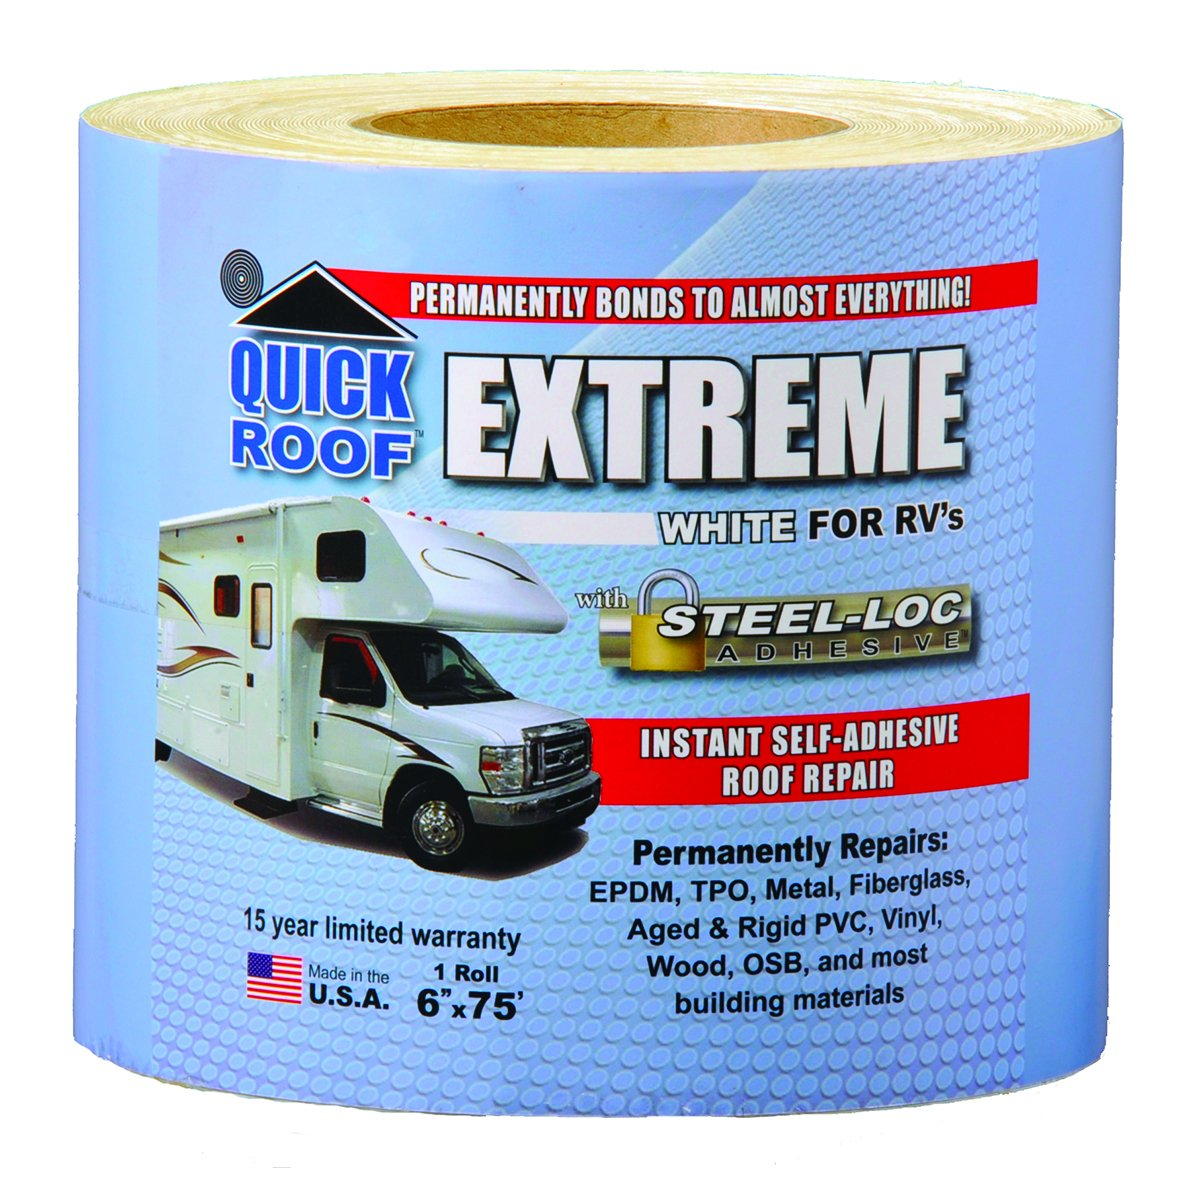 Cofair UBE675 Quick Roof Extreme with Steel-Loc Adhesive, White for RVs - 6'' x 75' by Cofair